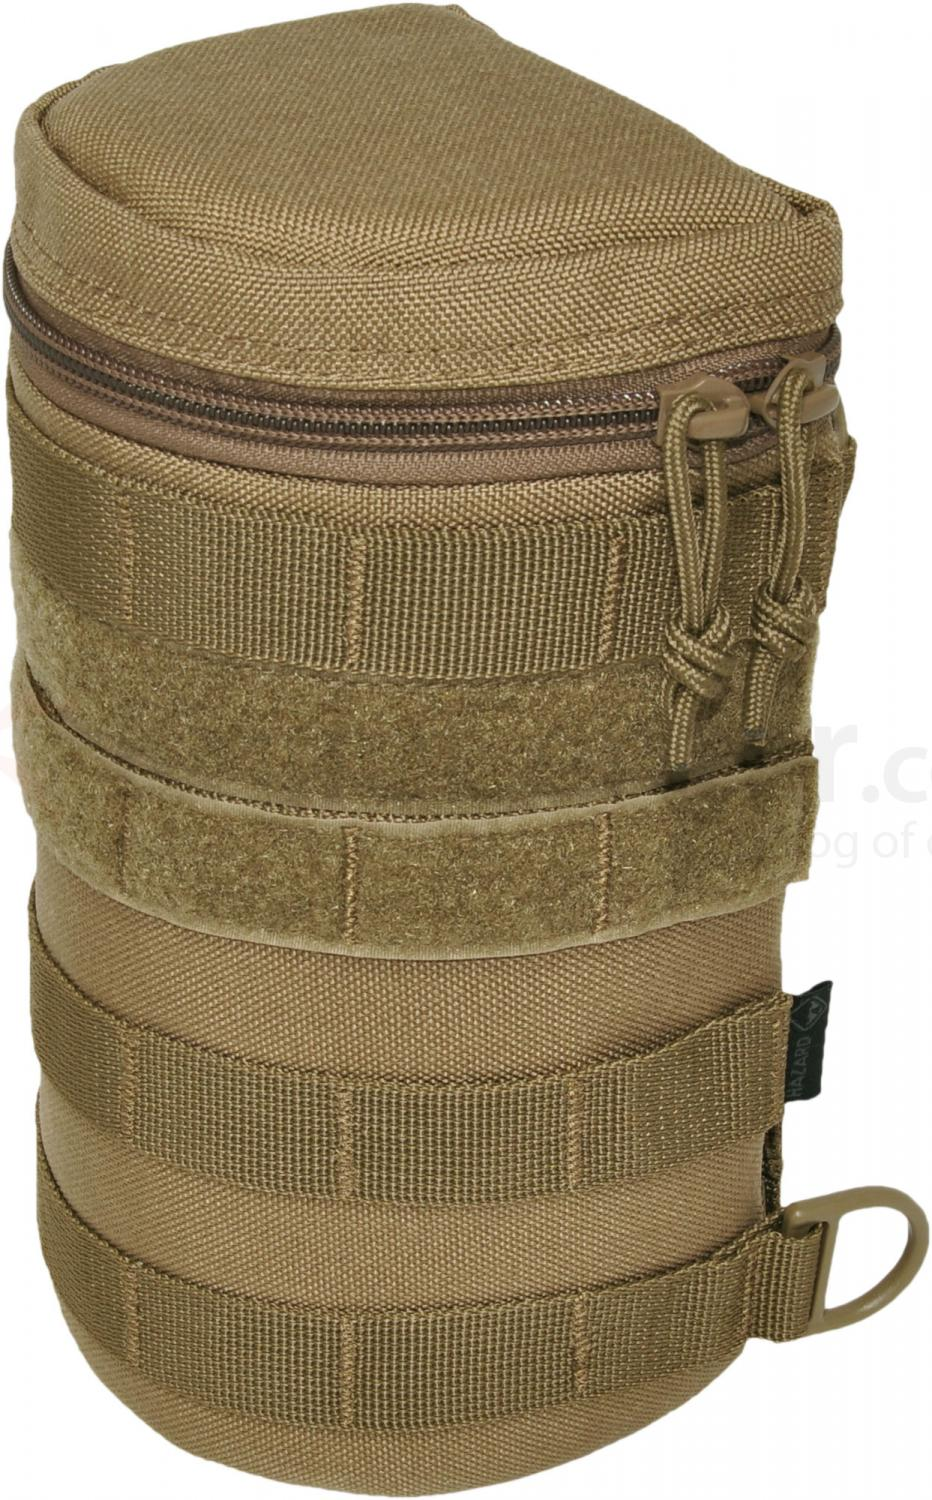 Hazard 4 Jelly Roll Padded MOLLE Lens/Bottle Case, Coyote